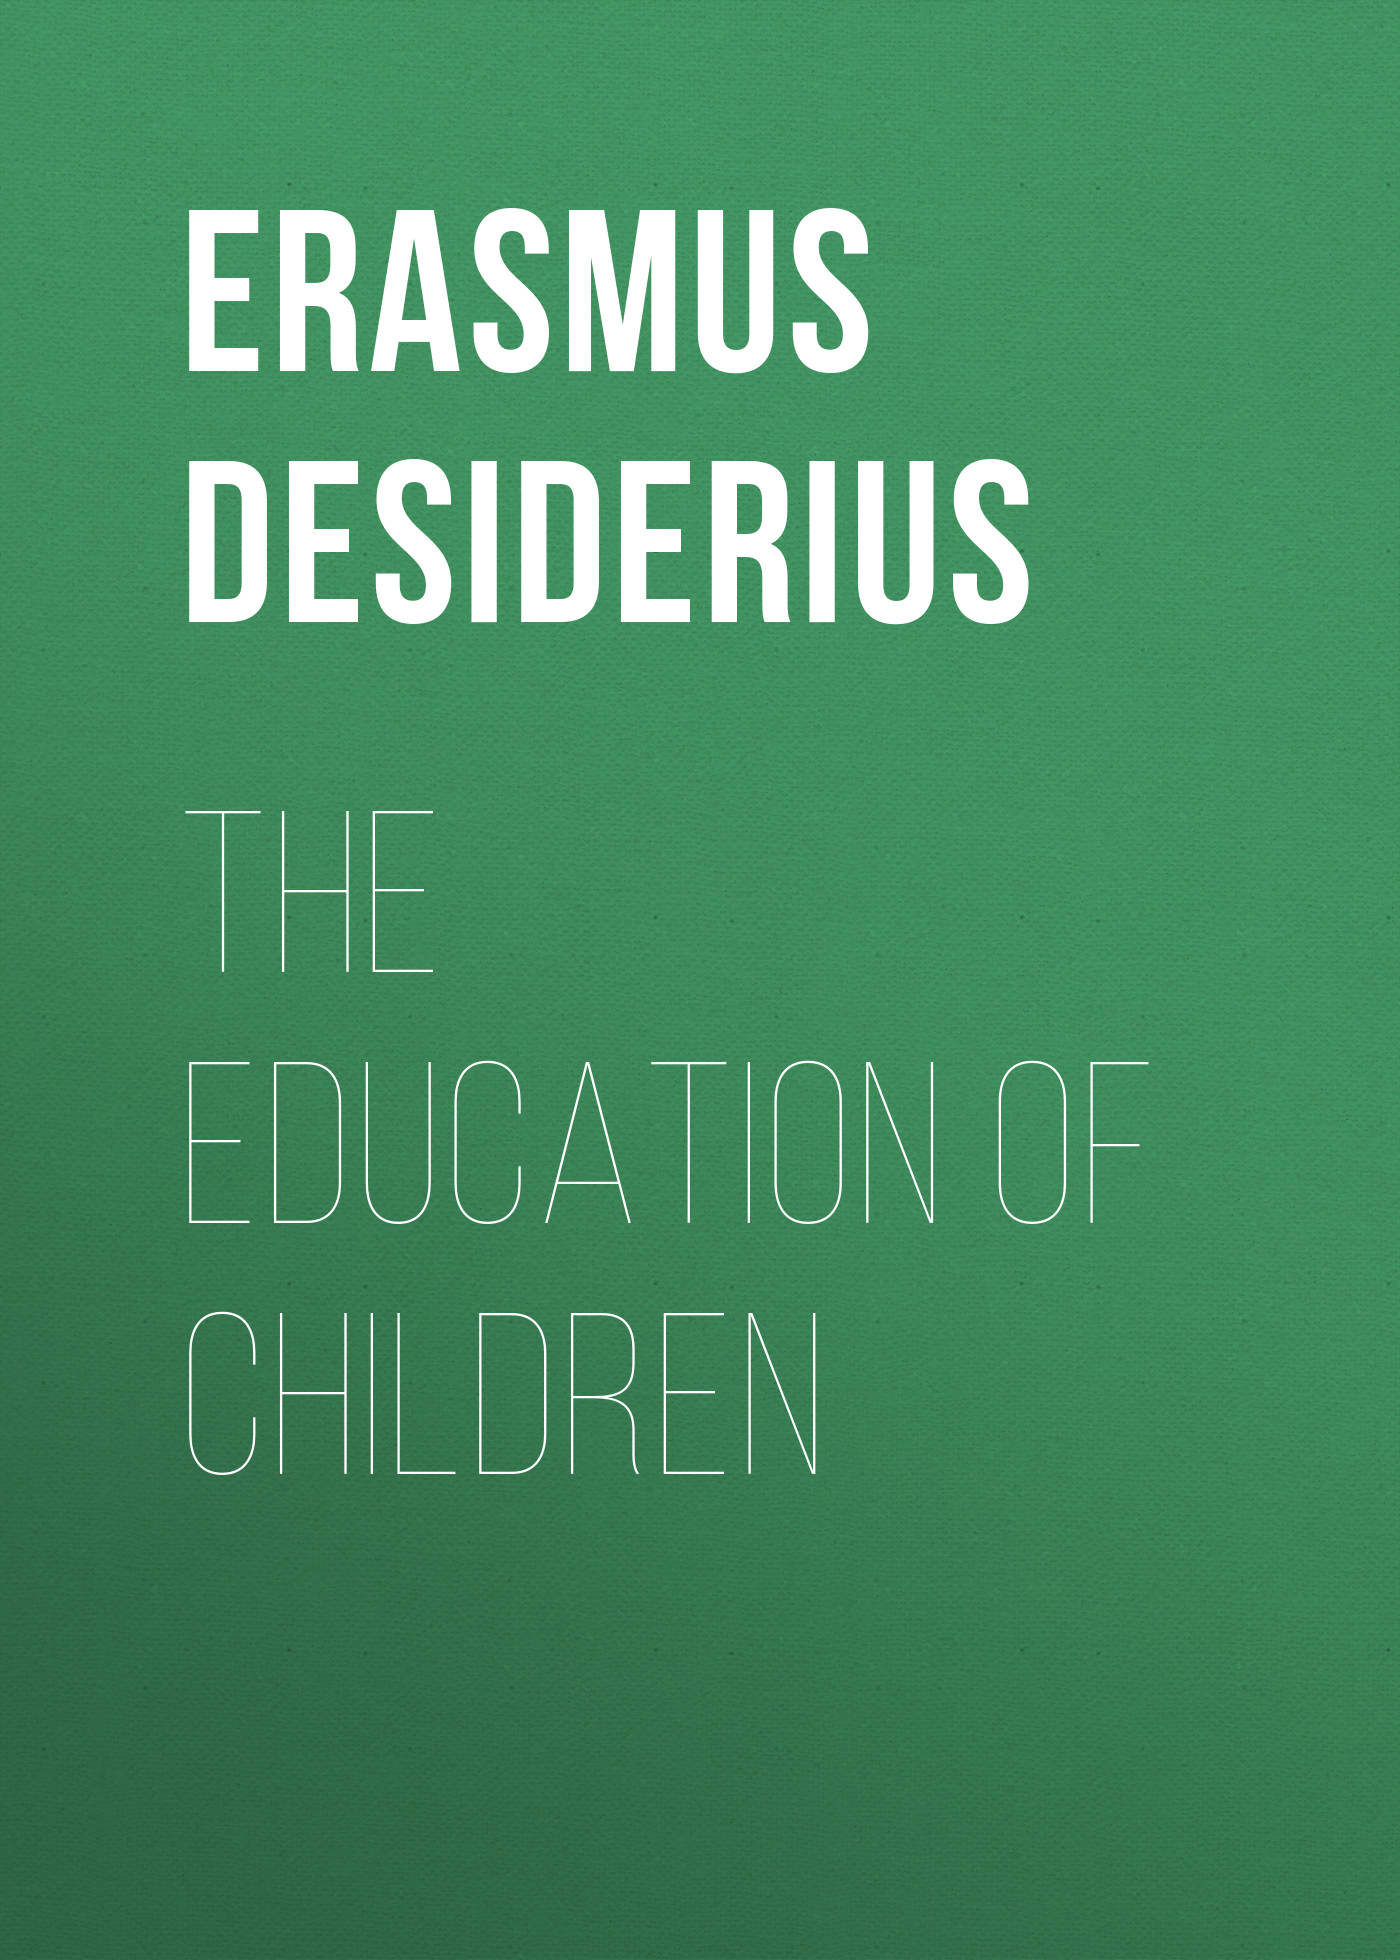 Erasmus Desiderius The Education of Children diy stirling engine steam machine model children learning education toys